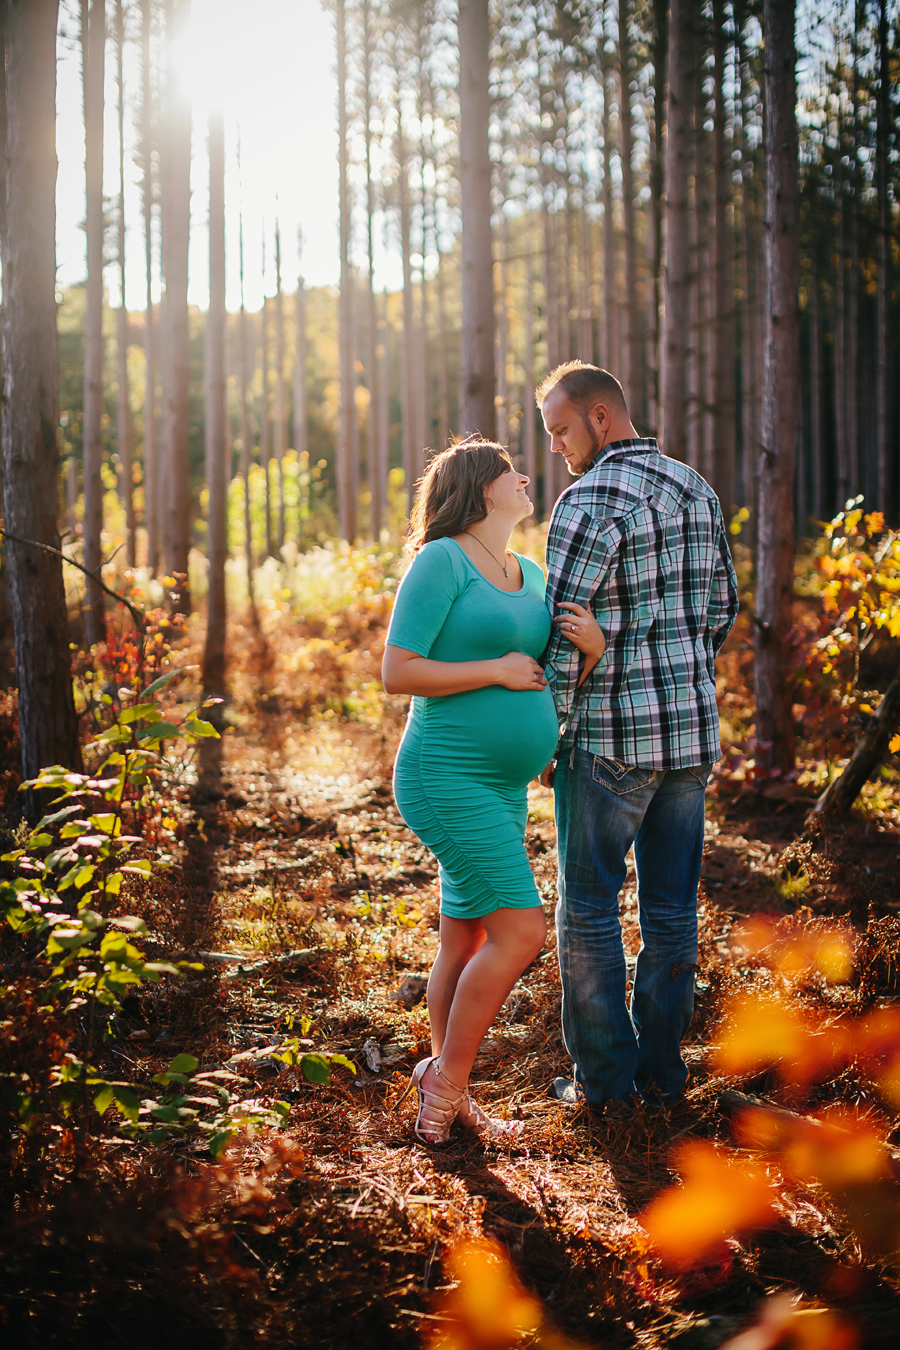 romantic-maternity-woods19.jpg